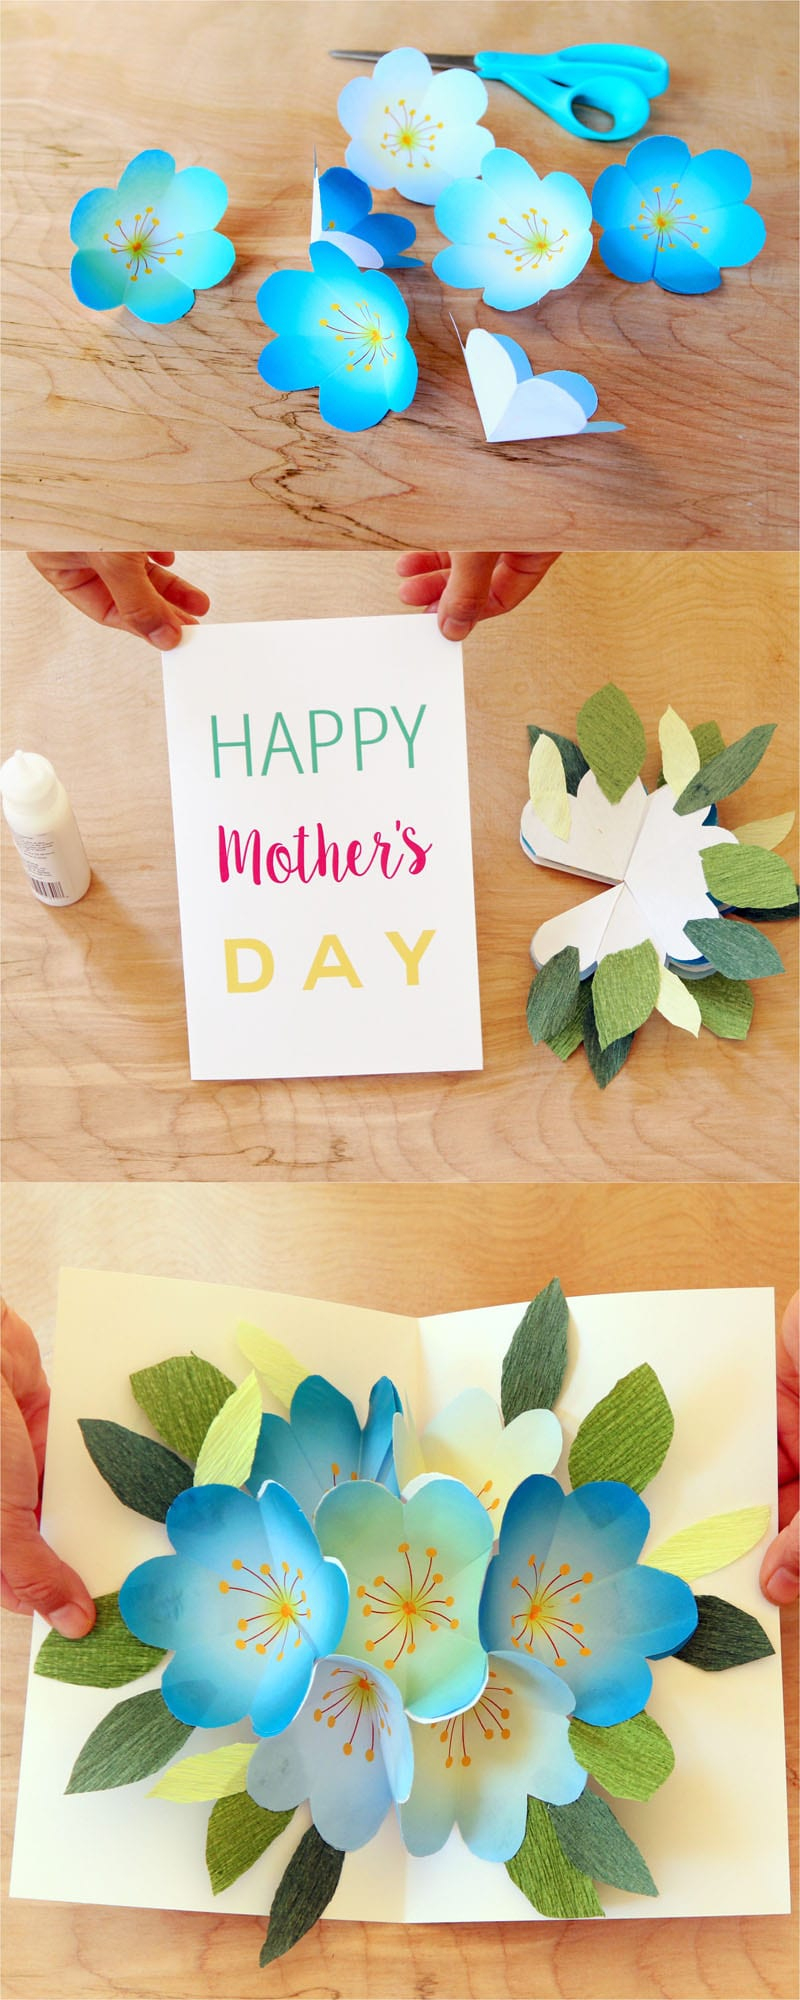 Pop Up Flowers Diy Printable Mother's Day Card - A Piece Of Rainbow - Free Printable Love Greeting Cards